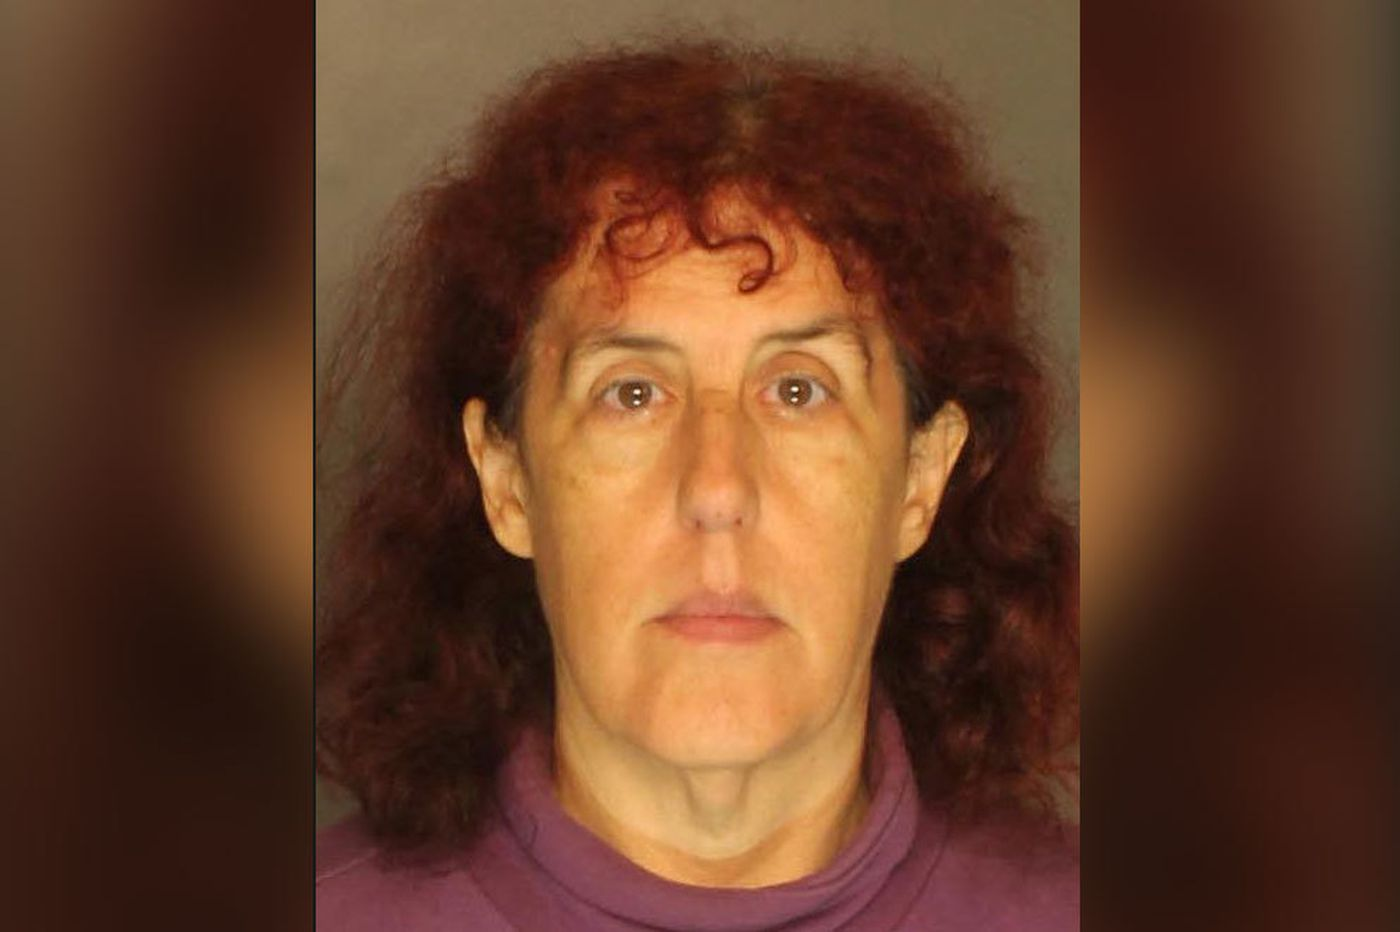 Ardmore grandmother whose body was hidden in a freezer was sent $186K in Social Security checks, police say